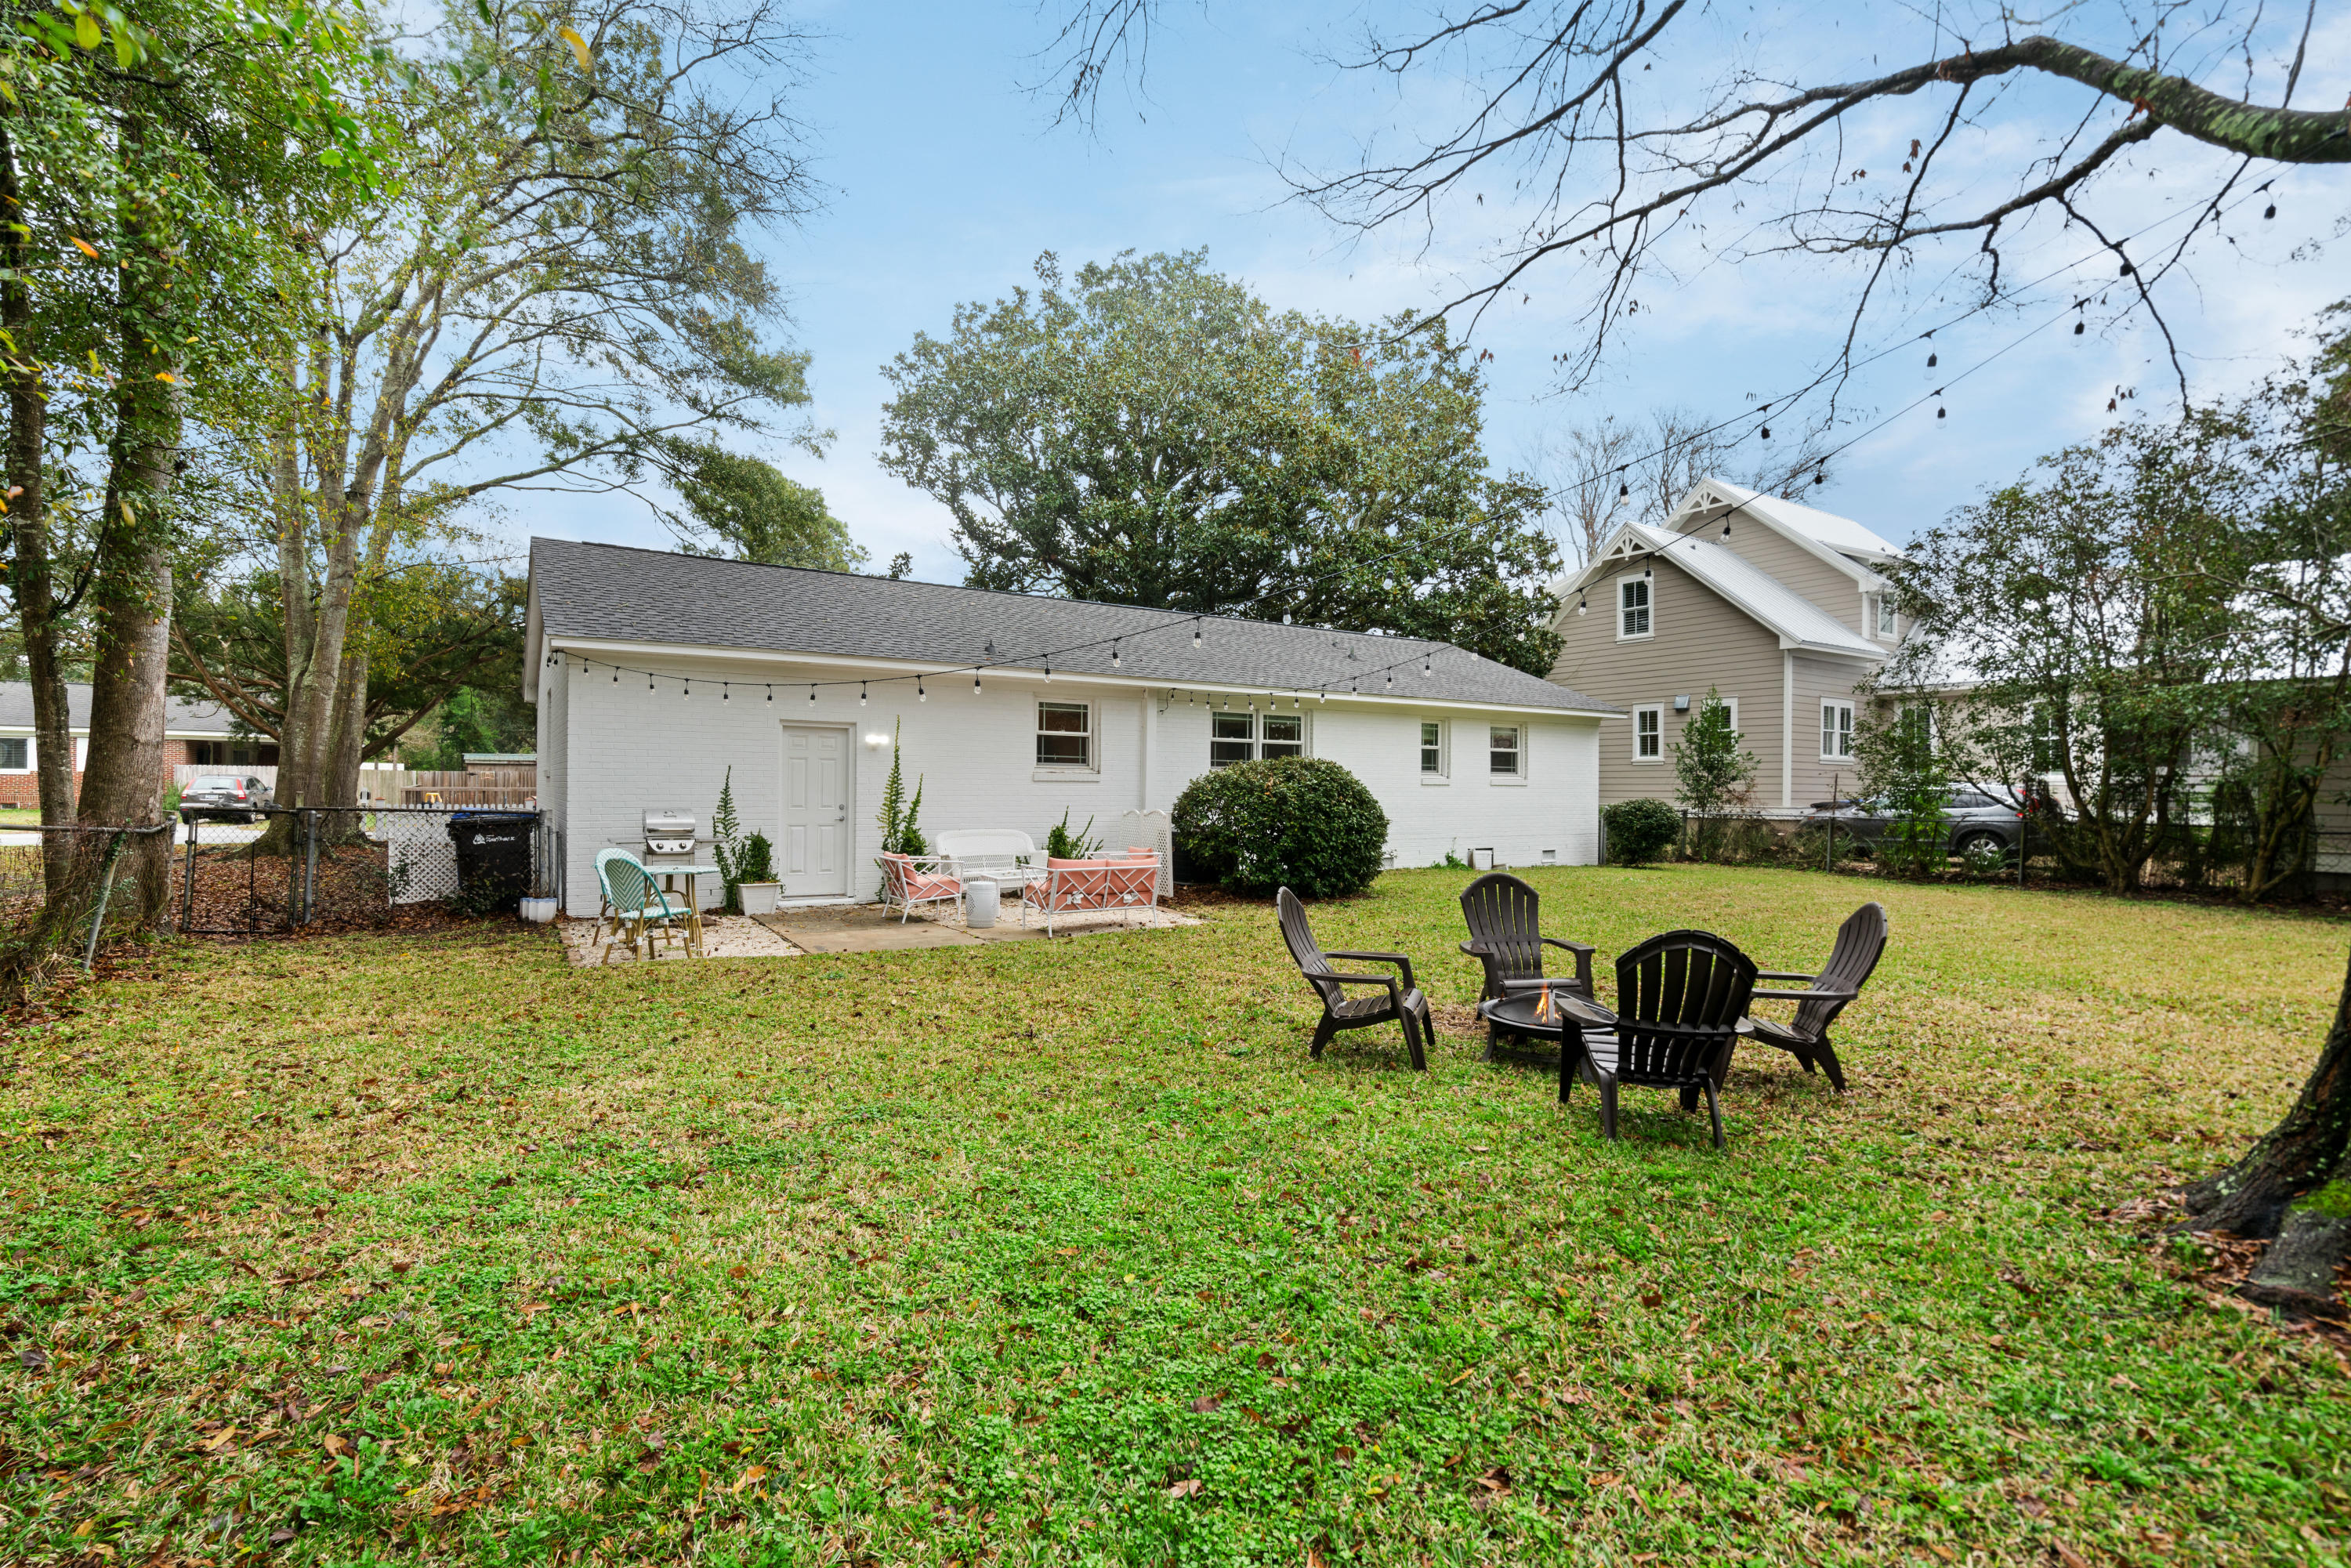 Old Mt Pleasant Homes For Sale - 1463 Mataoka, Mount Pleasant, SC - 4